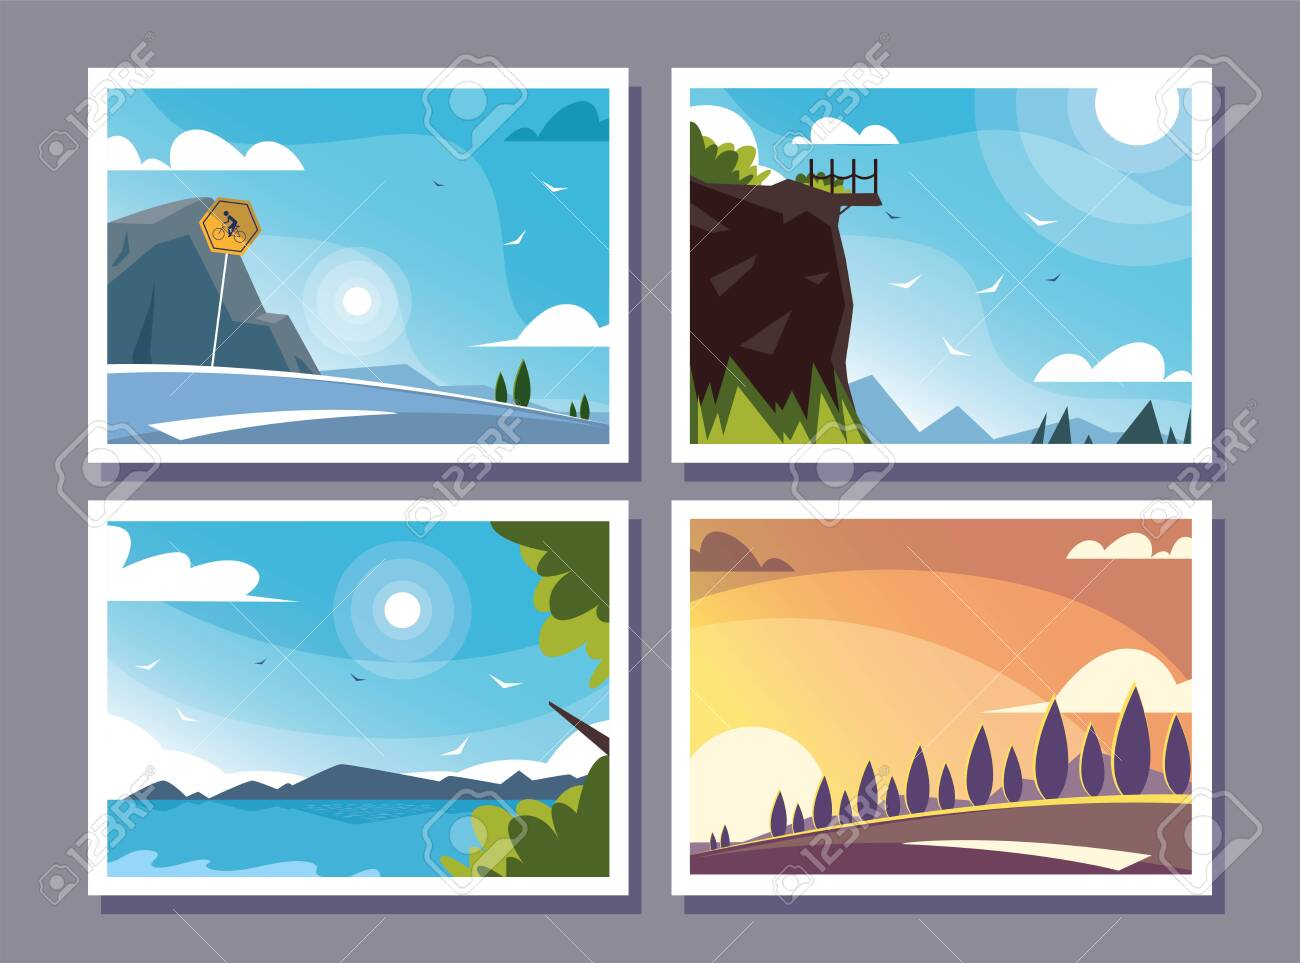 four scenes with nature landscape and beautiful fields vector illustration design - 151287793